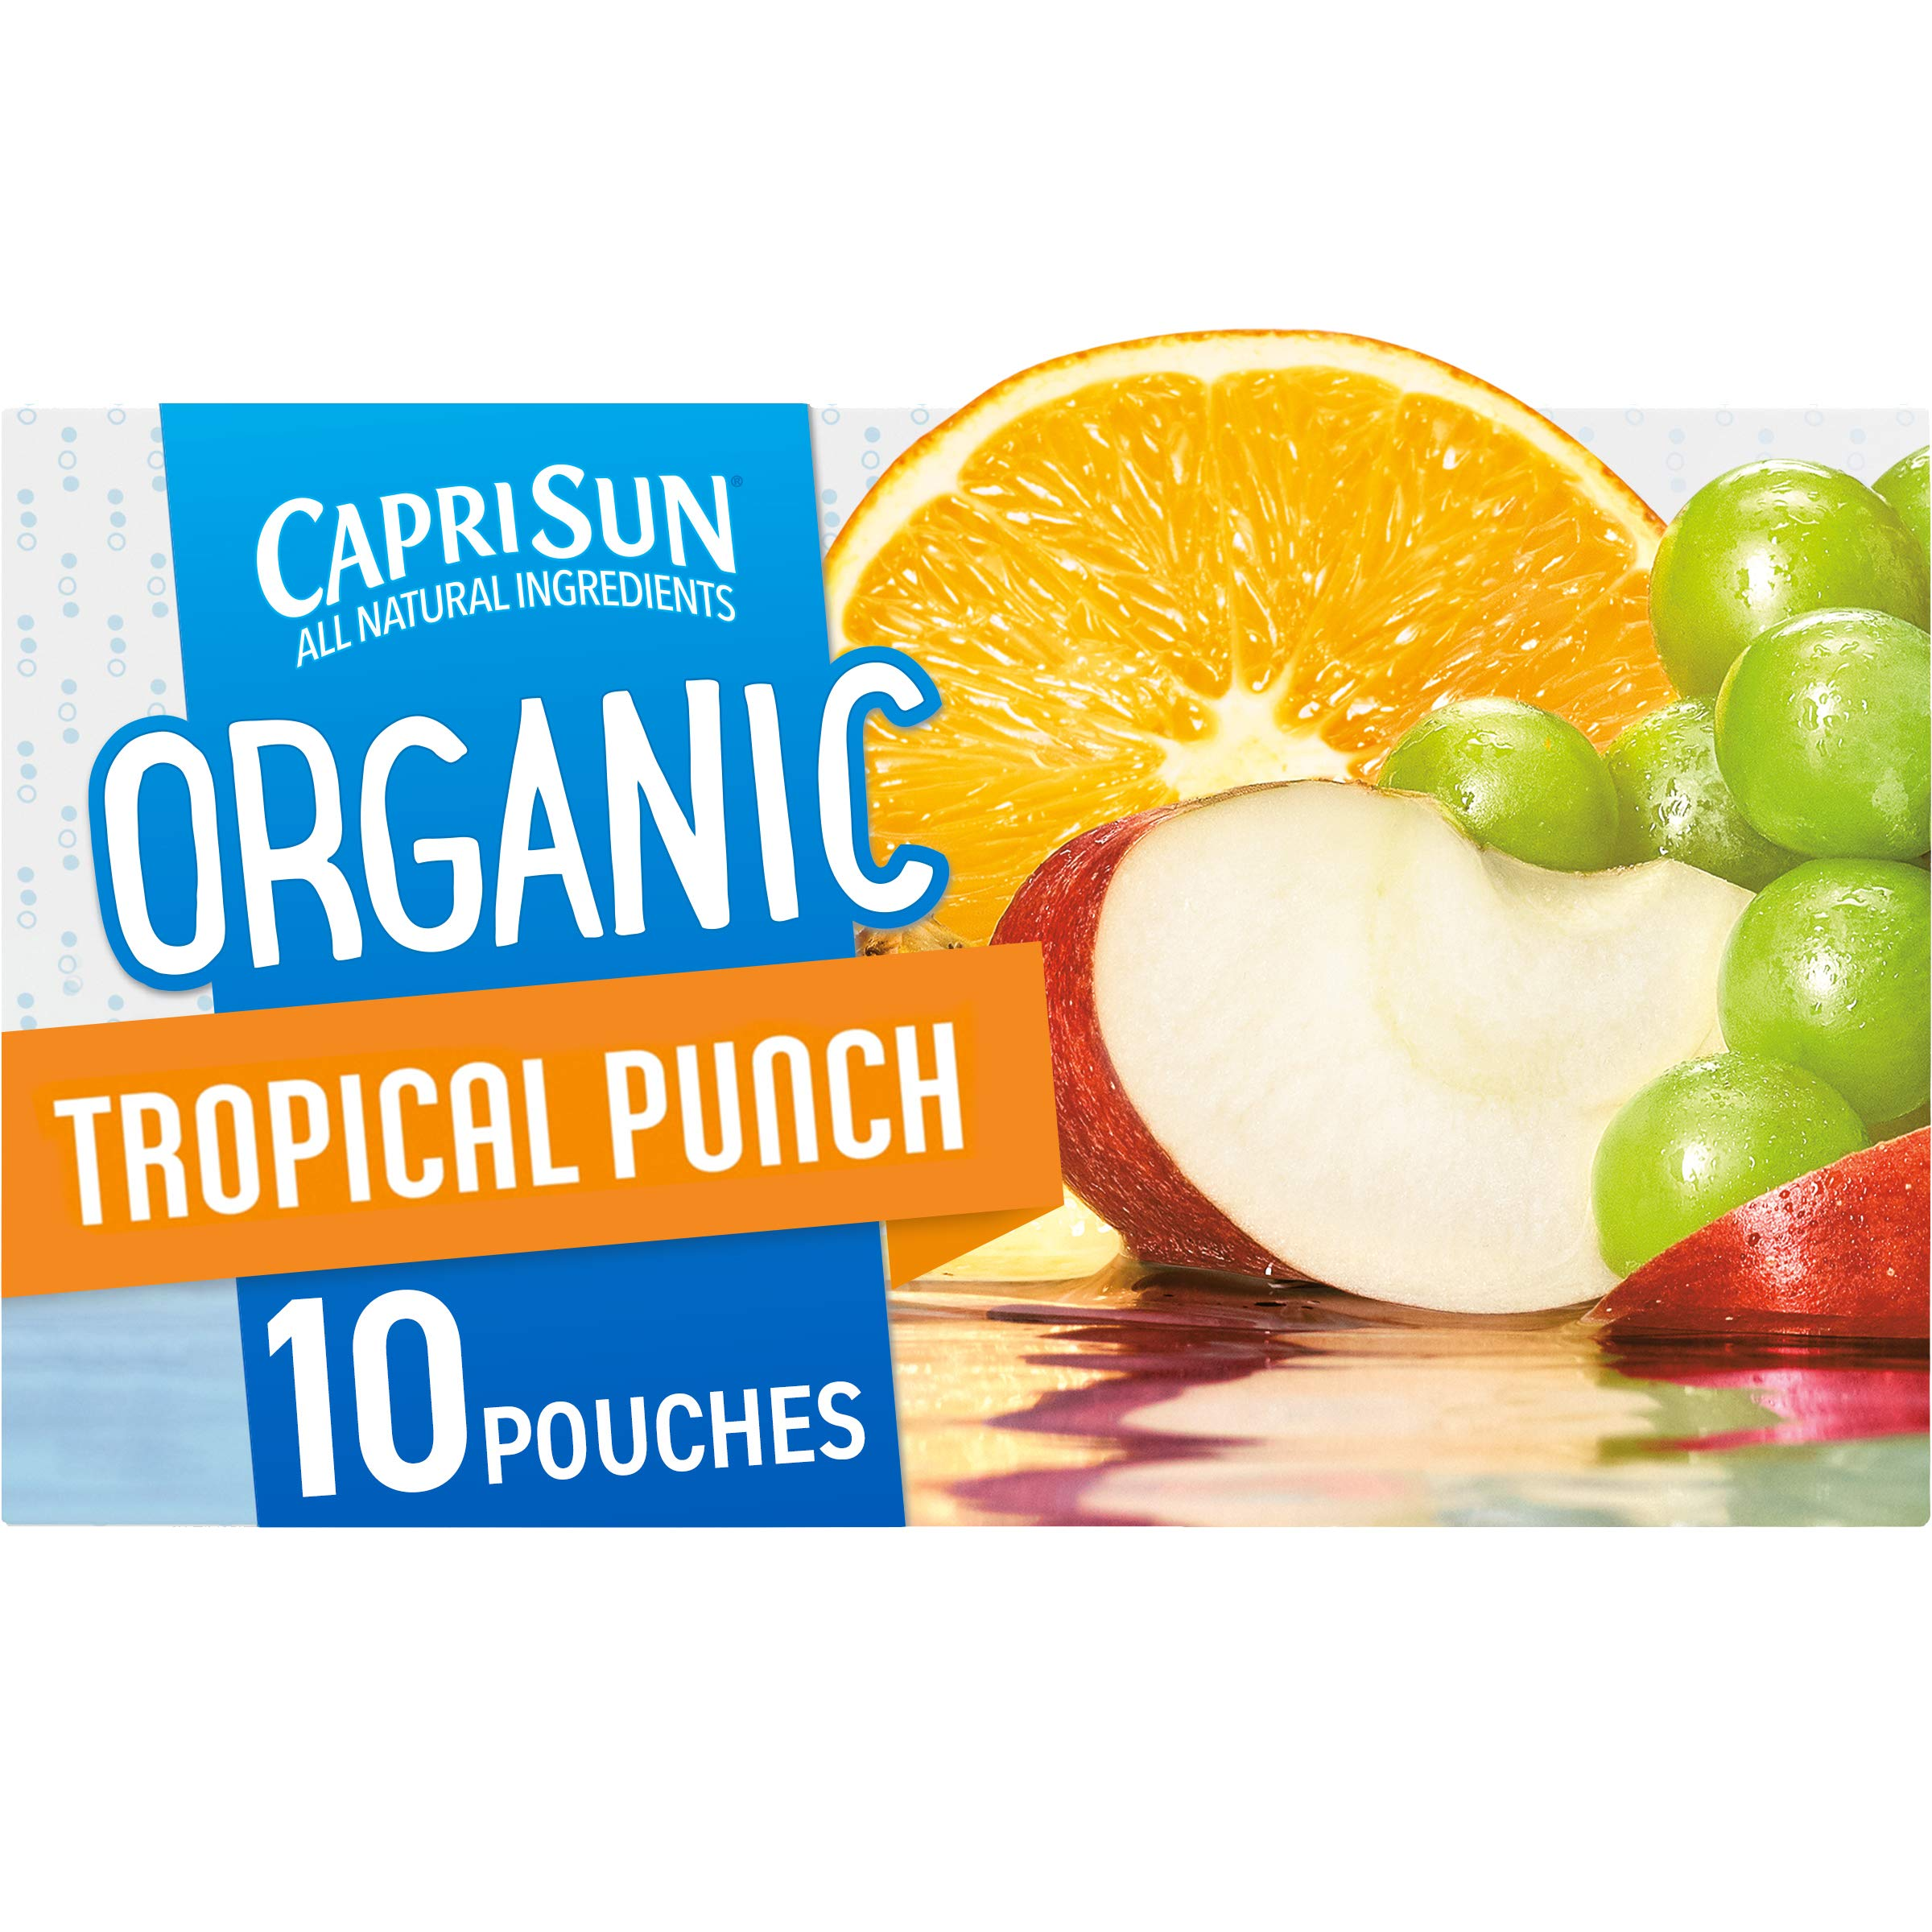 Capri Sun Organic Tropical Punch Ready-to-Drink Juice (10 Pouches)